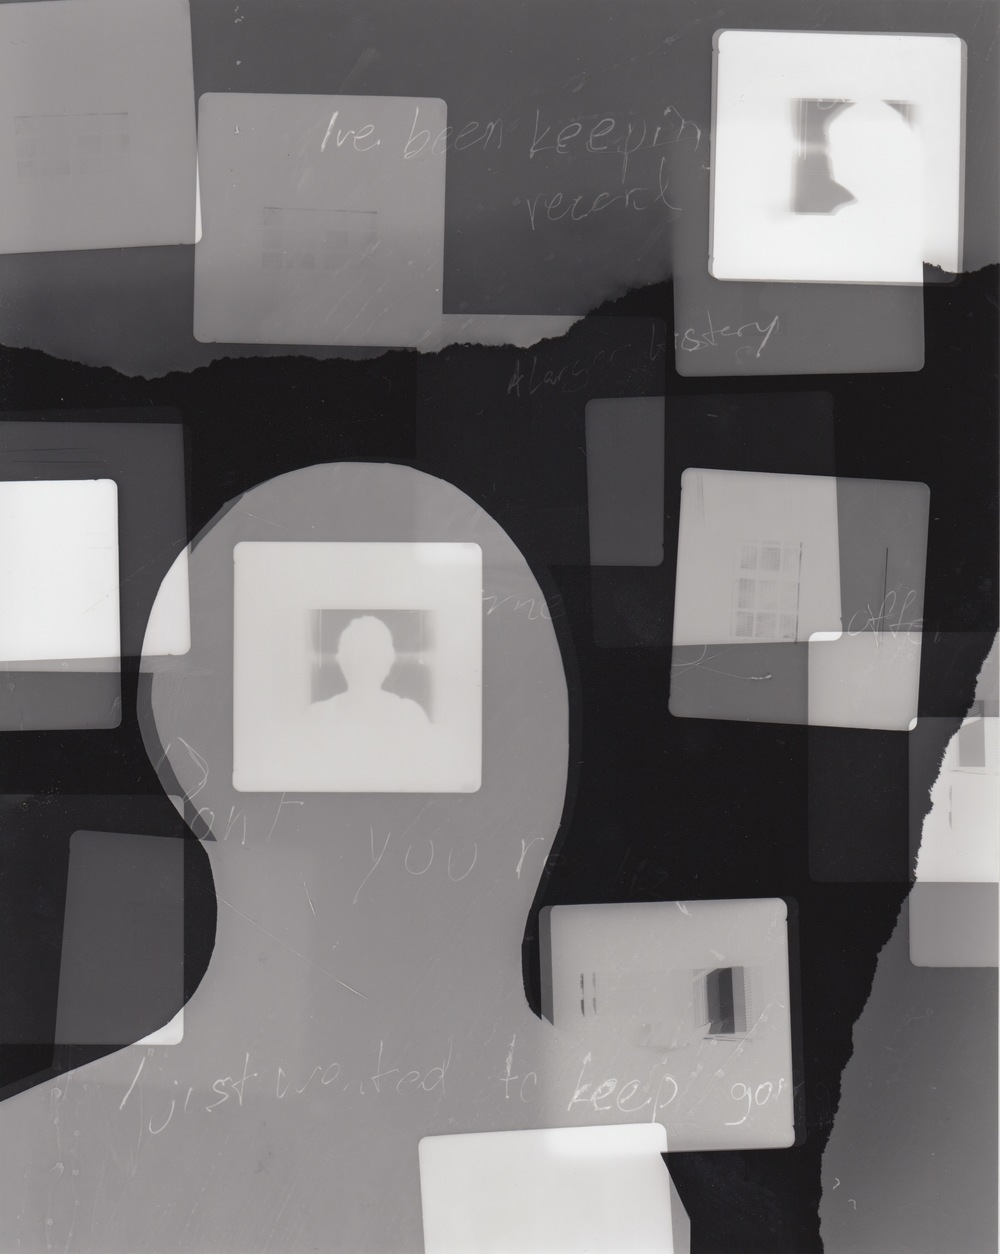 I've been keeping a record (4) - Photogram